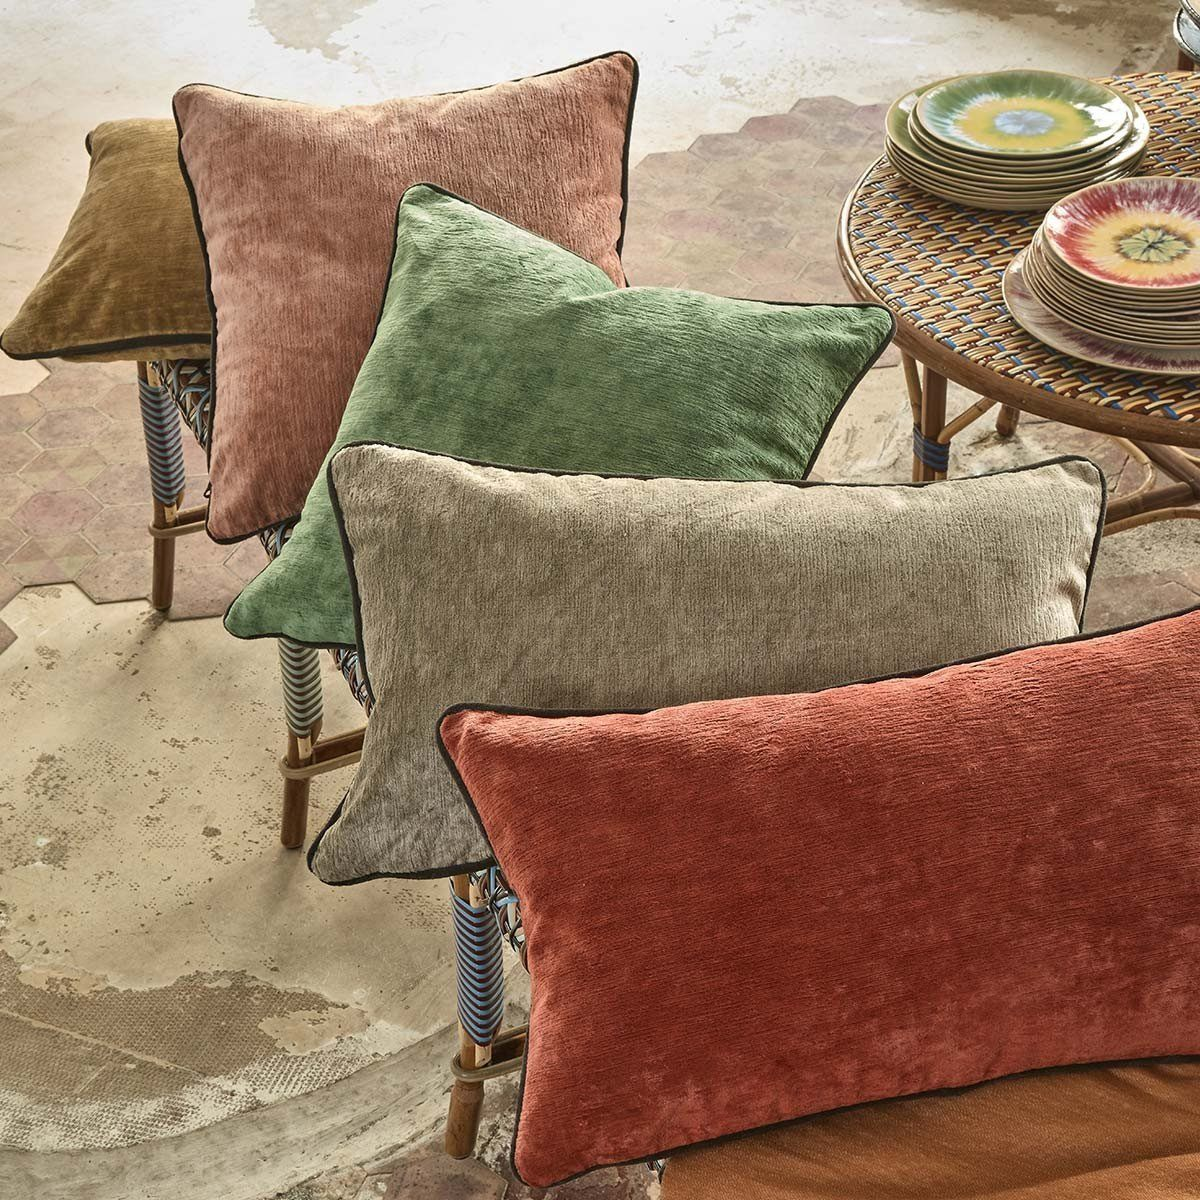 Fig Linens - Boromee Decorative Pillows by Iosis